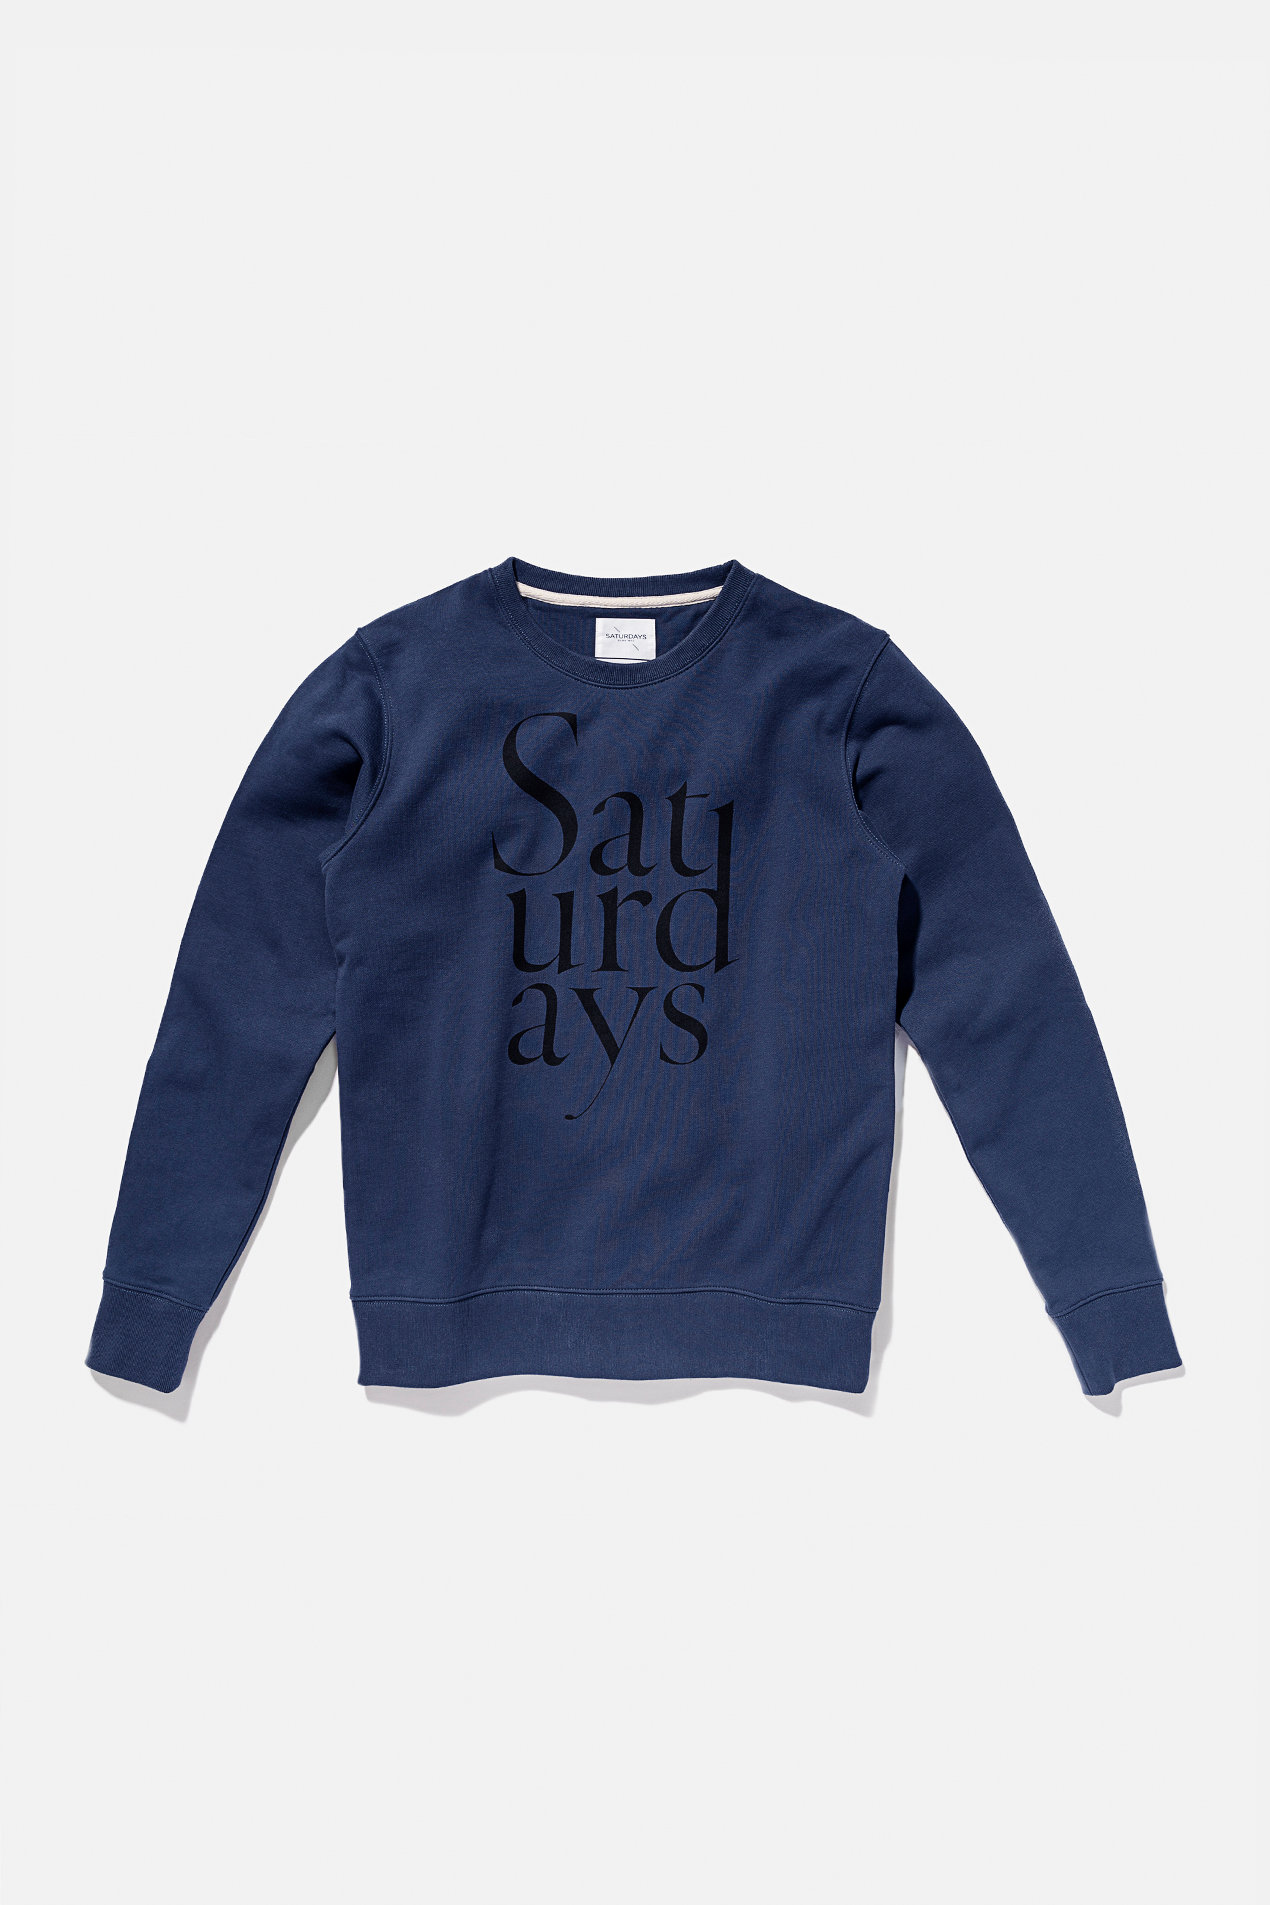 __0002_sweats-_-sweaters_0005_layer-5-copy.4.jpg